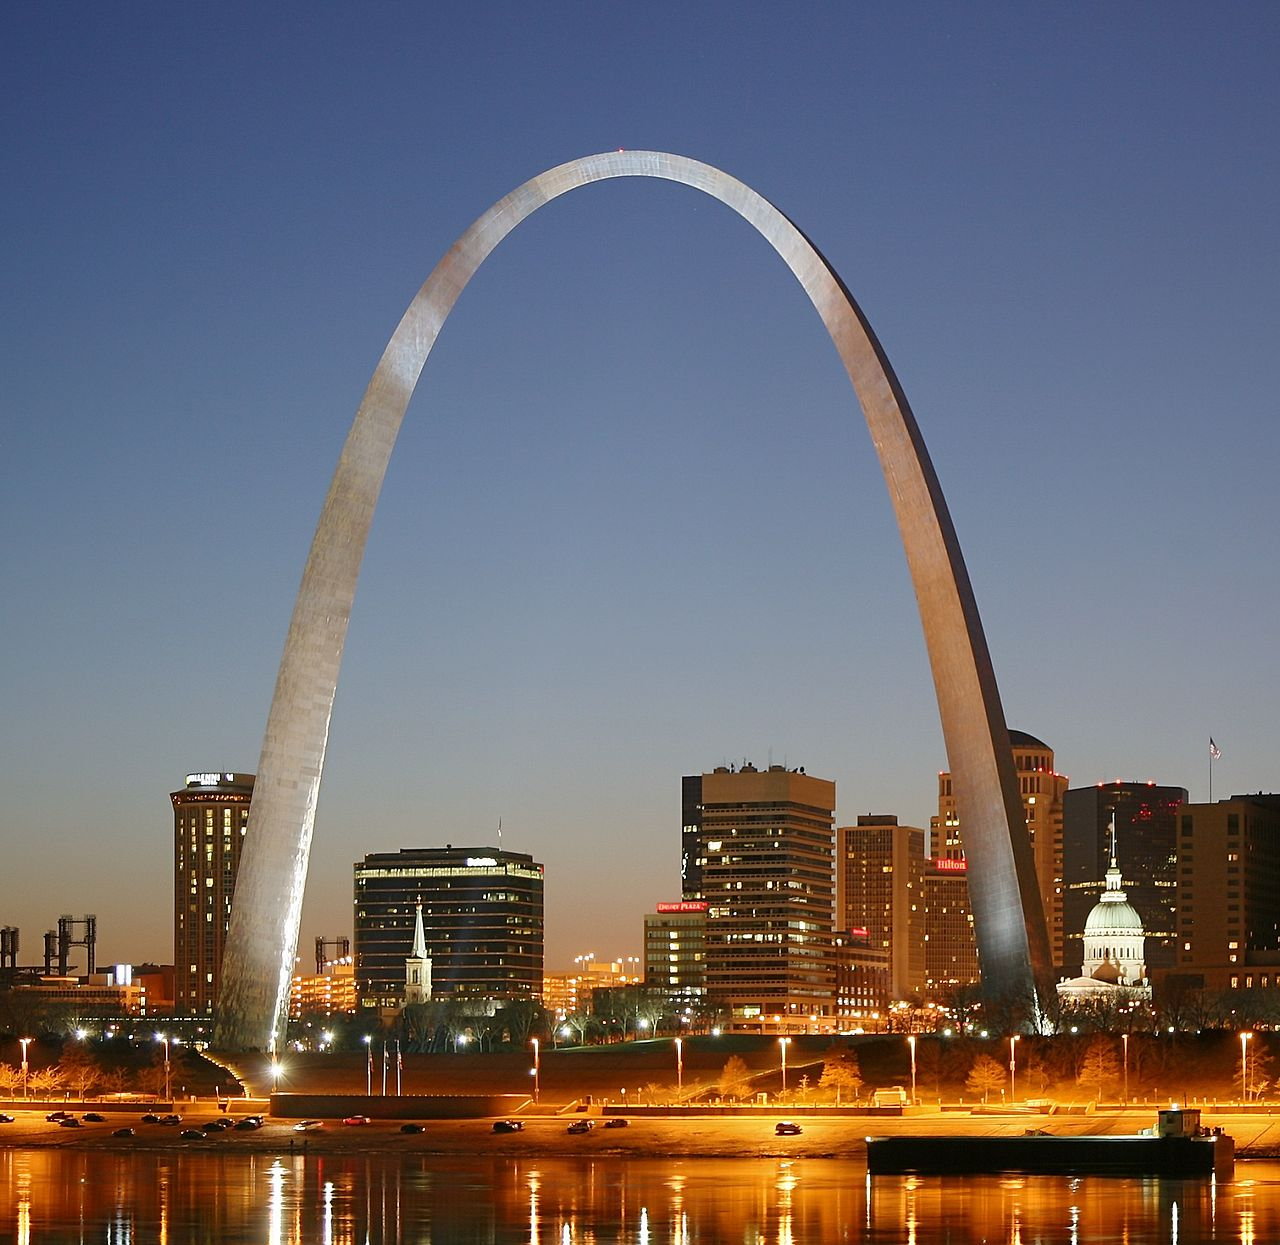 St. Louis Gateway Arch, a magnanimous feat of engineering and construction